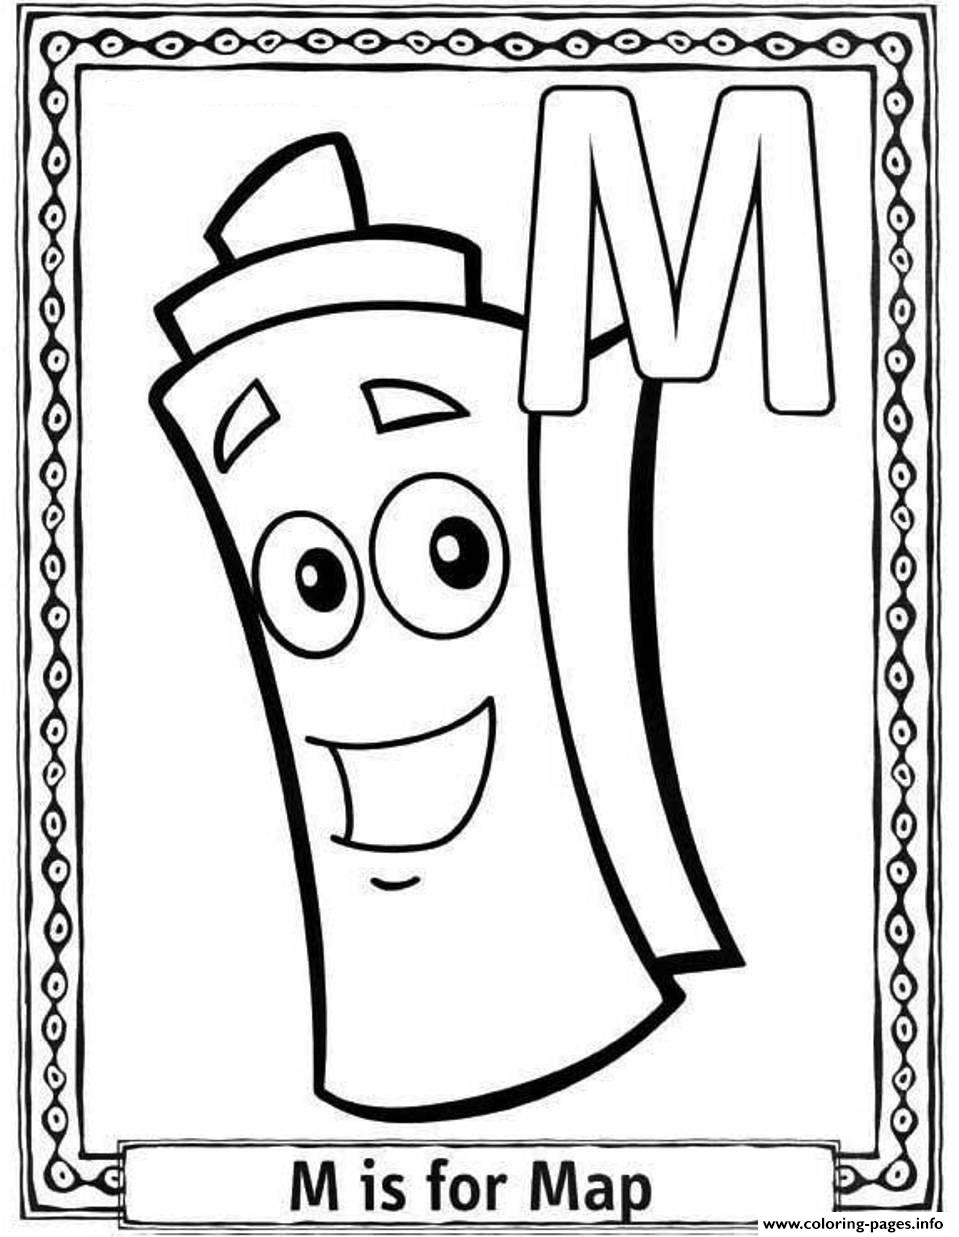 letter m coloring pages for adults adult coloring book download zentangle alphabet letter m adults pages m letter for coloring